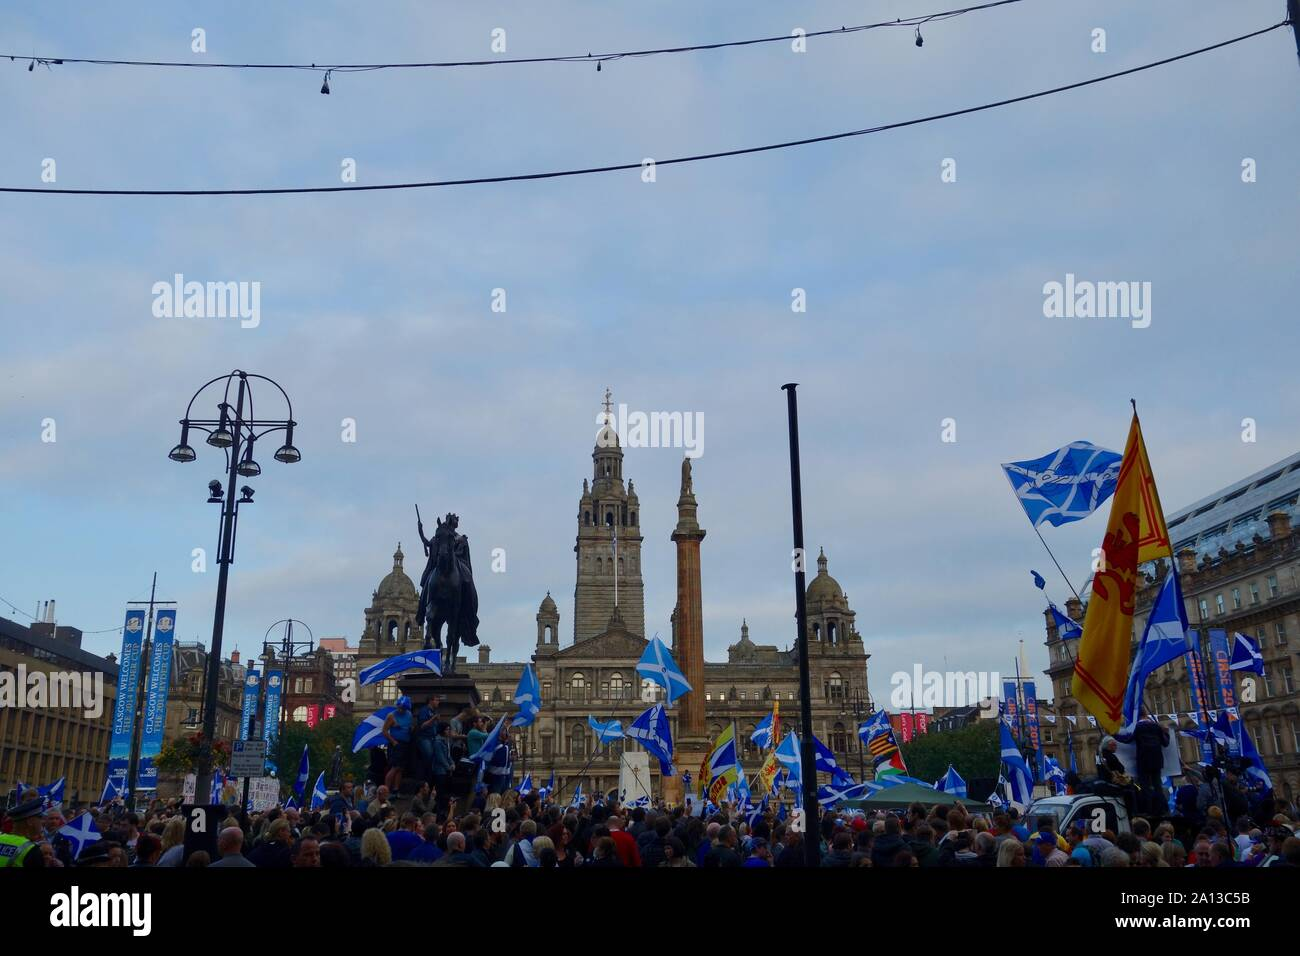 Day before the 2014 Scottish Independence Referendum. Scottish Independence Rally, George Square, Glasgow. Stock Photo